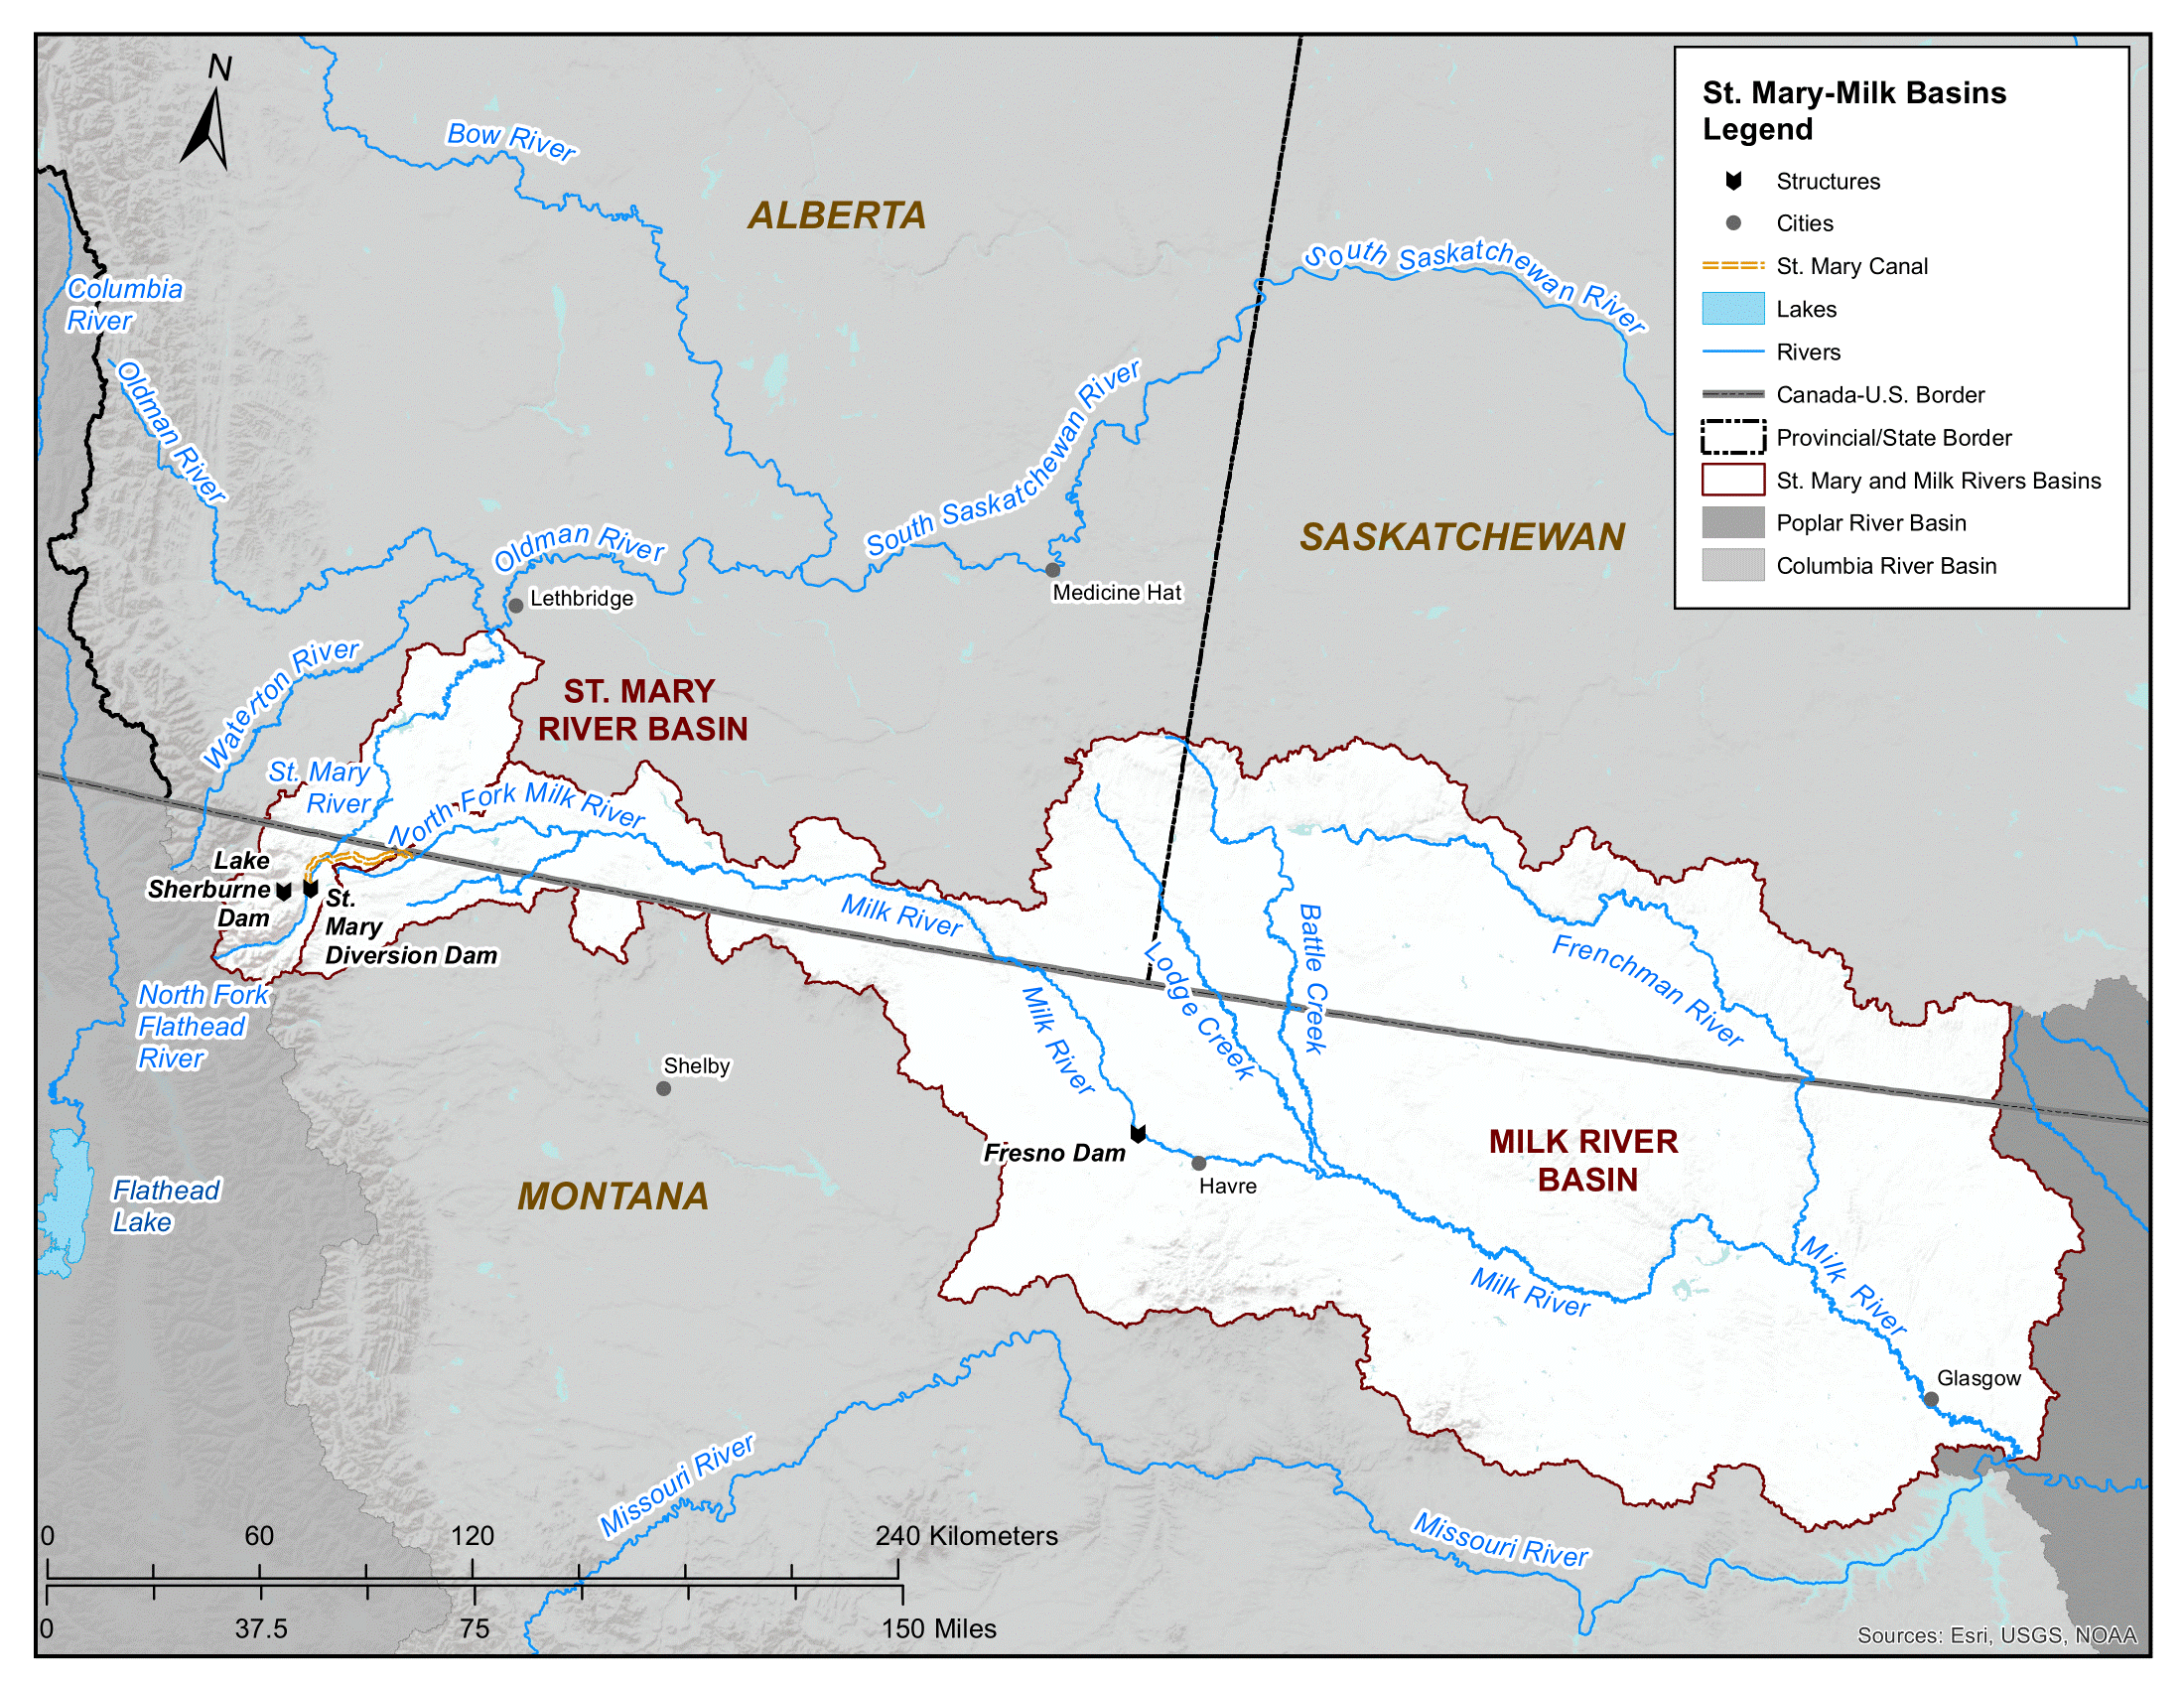 St. Mary and Milk watersheds map